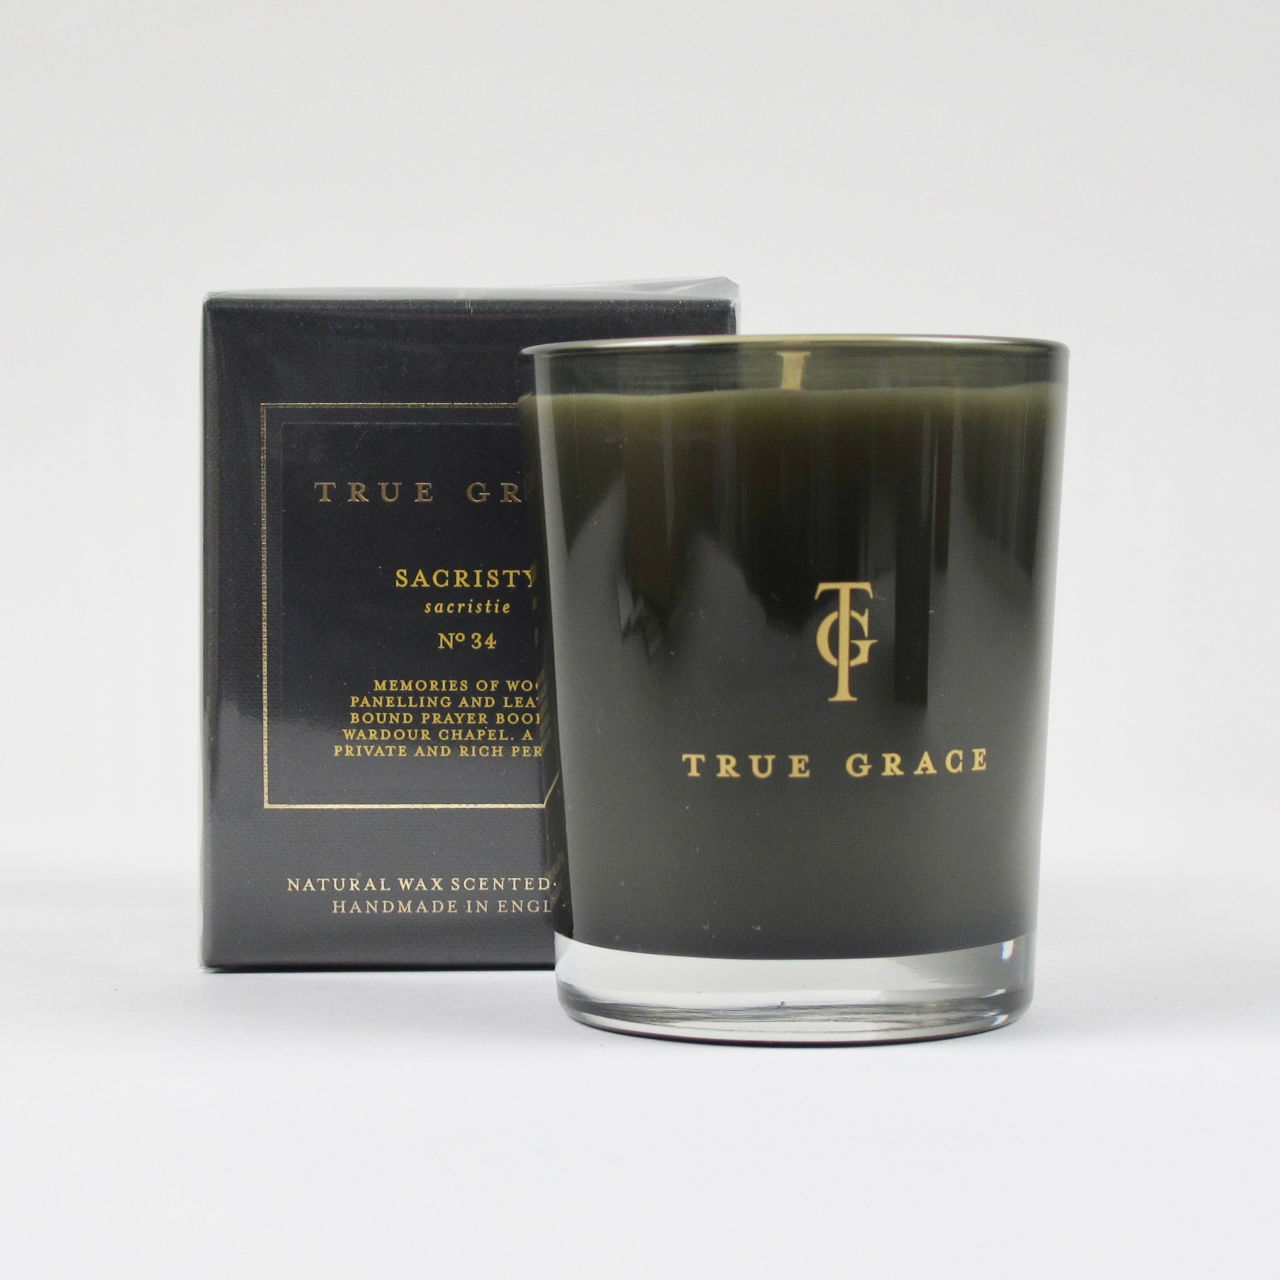 Sacristy Scented Candle Sacristy Scented Candle by True Grace